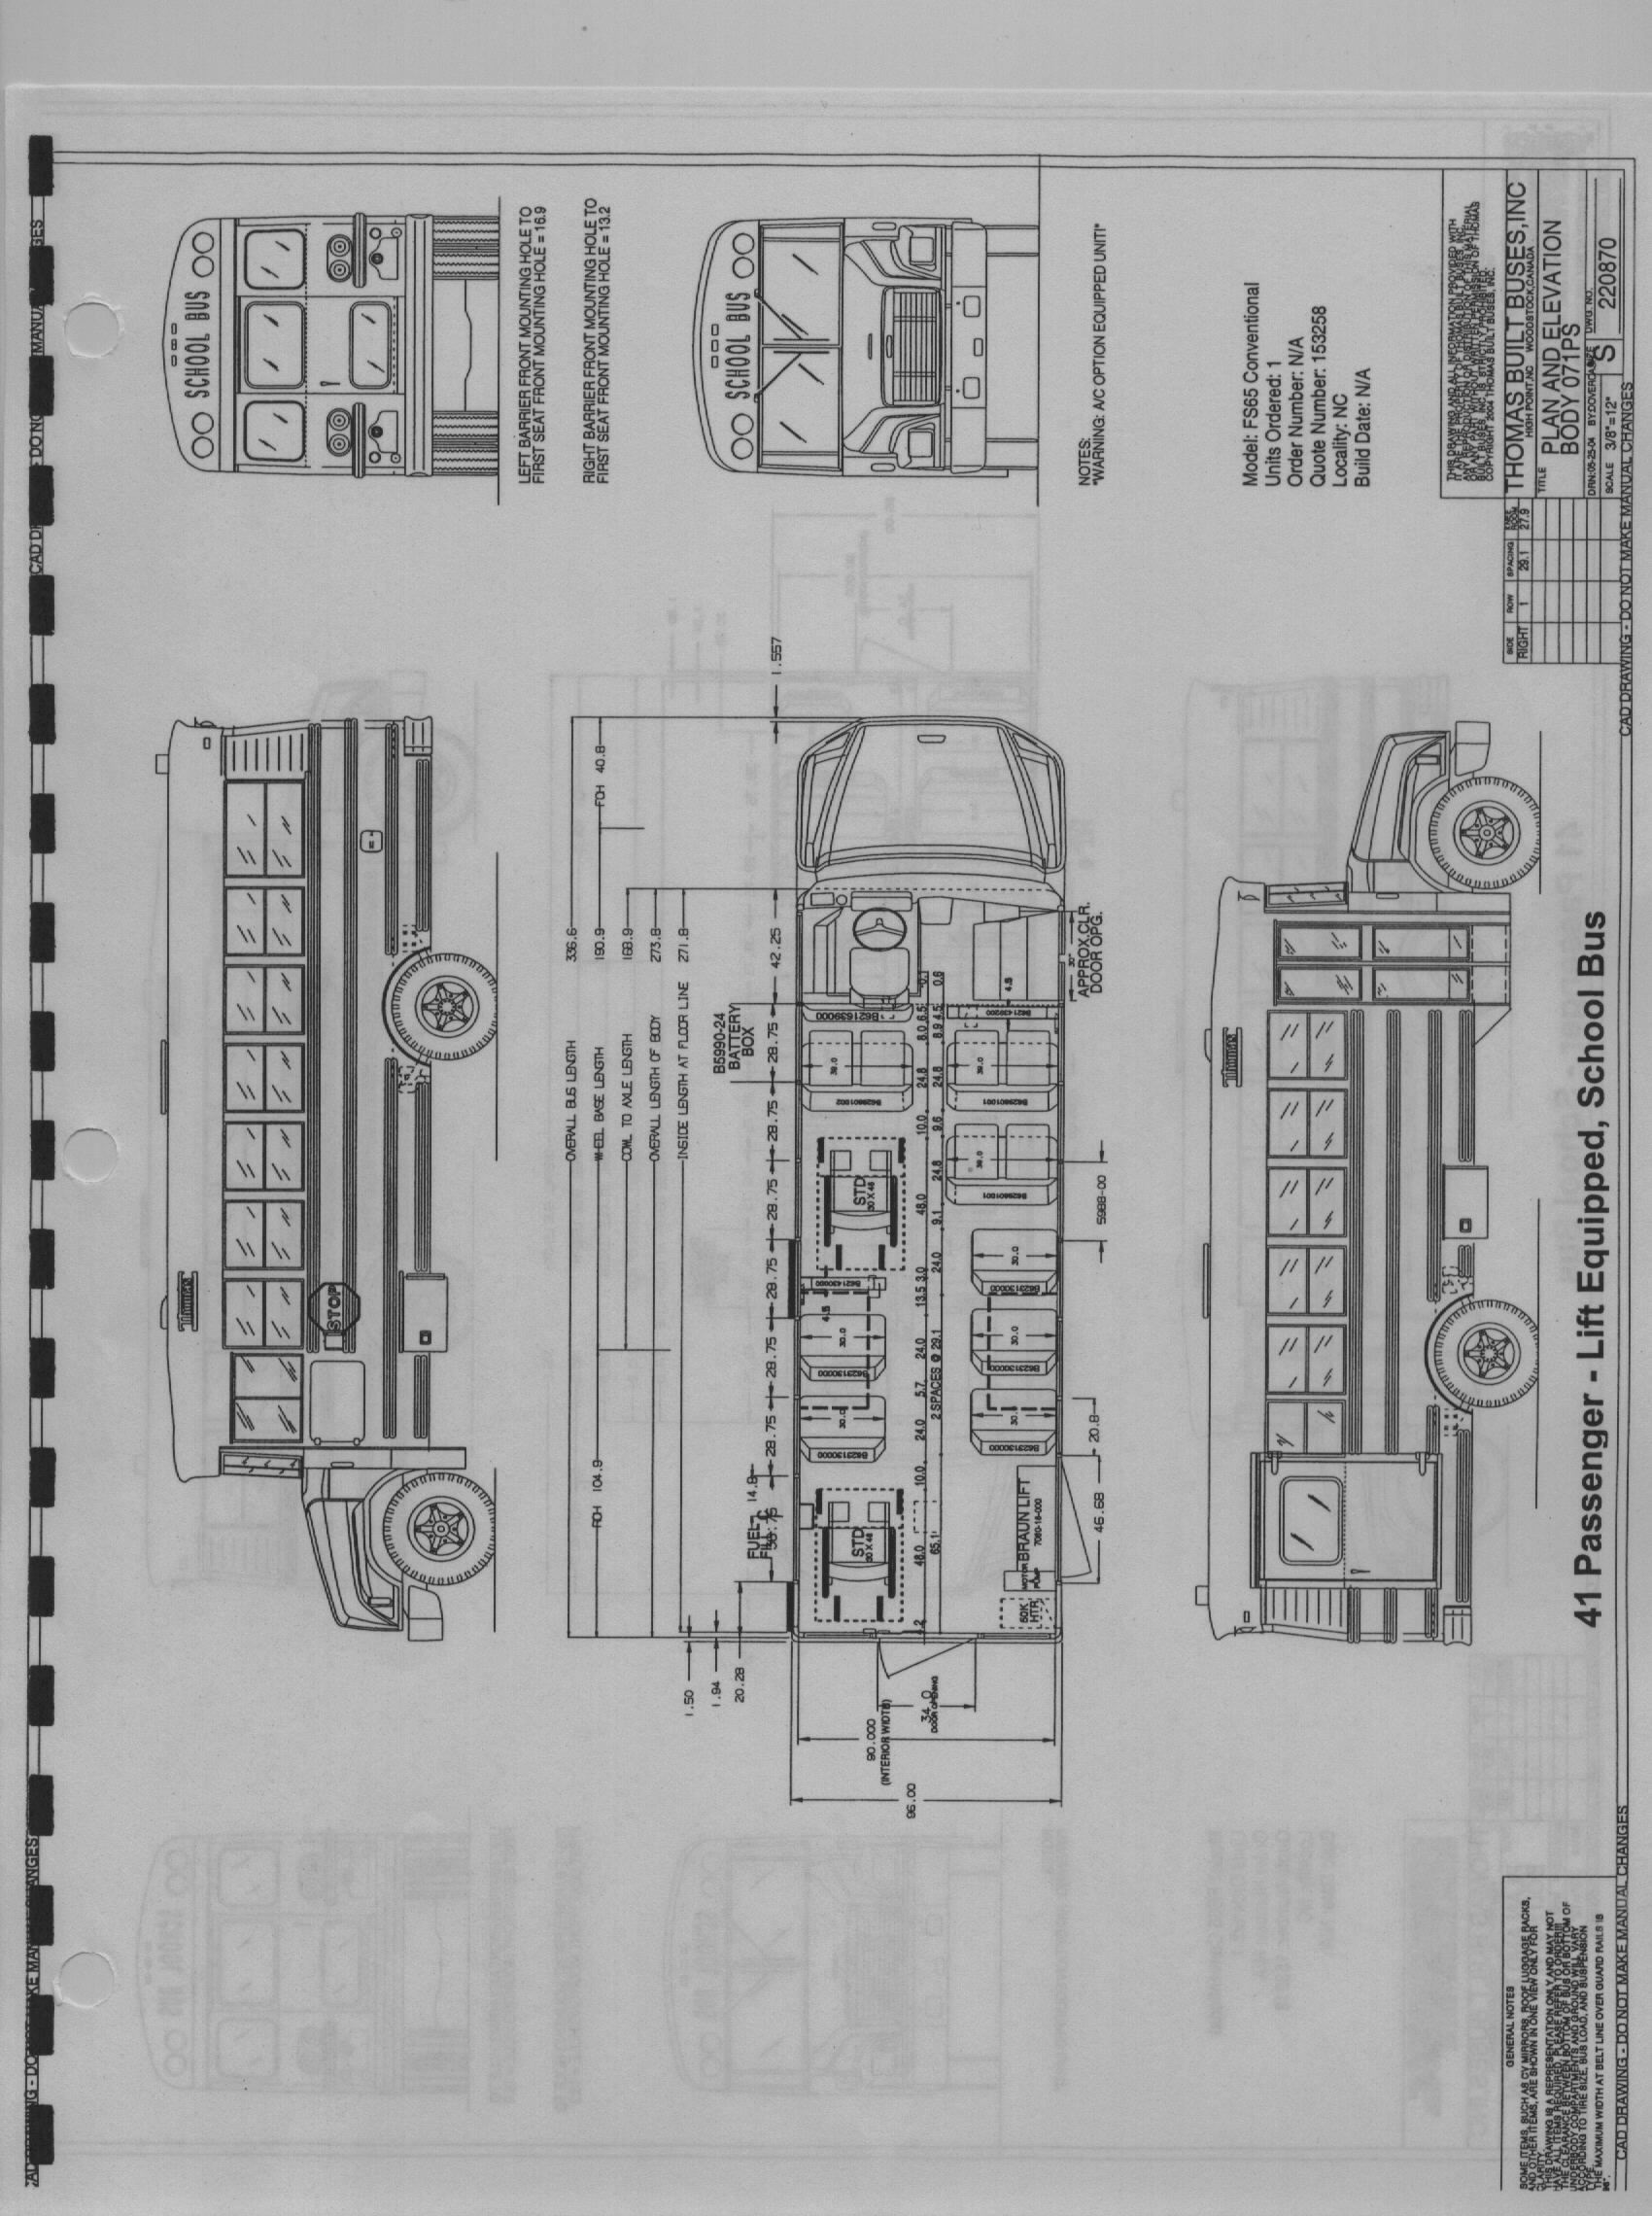 2004 thomas bus wiring diagrams